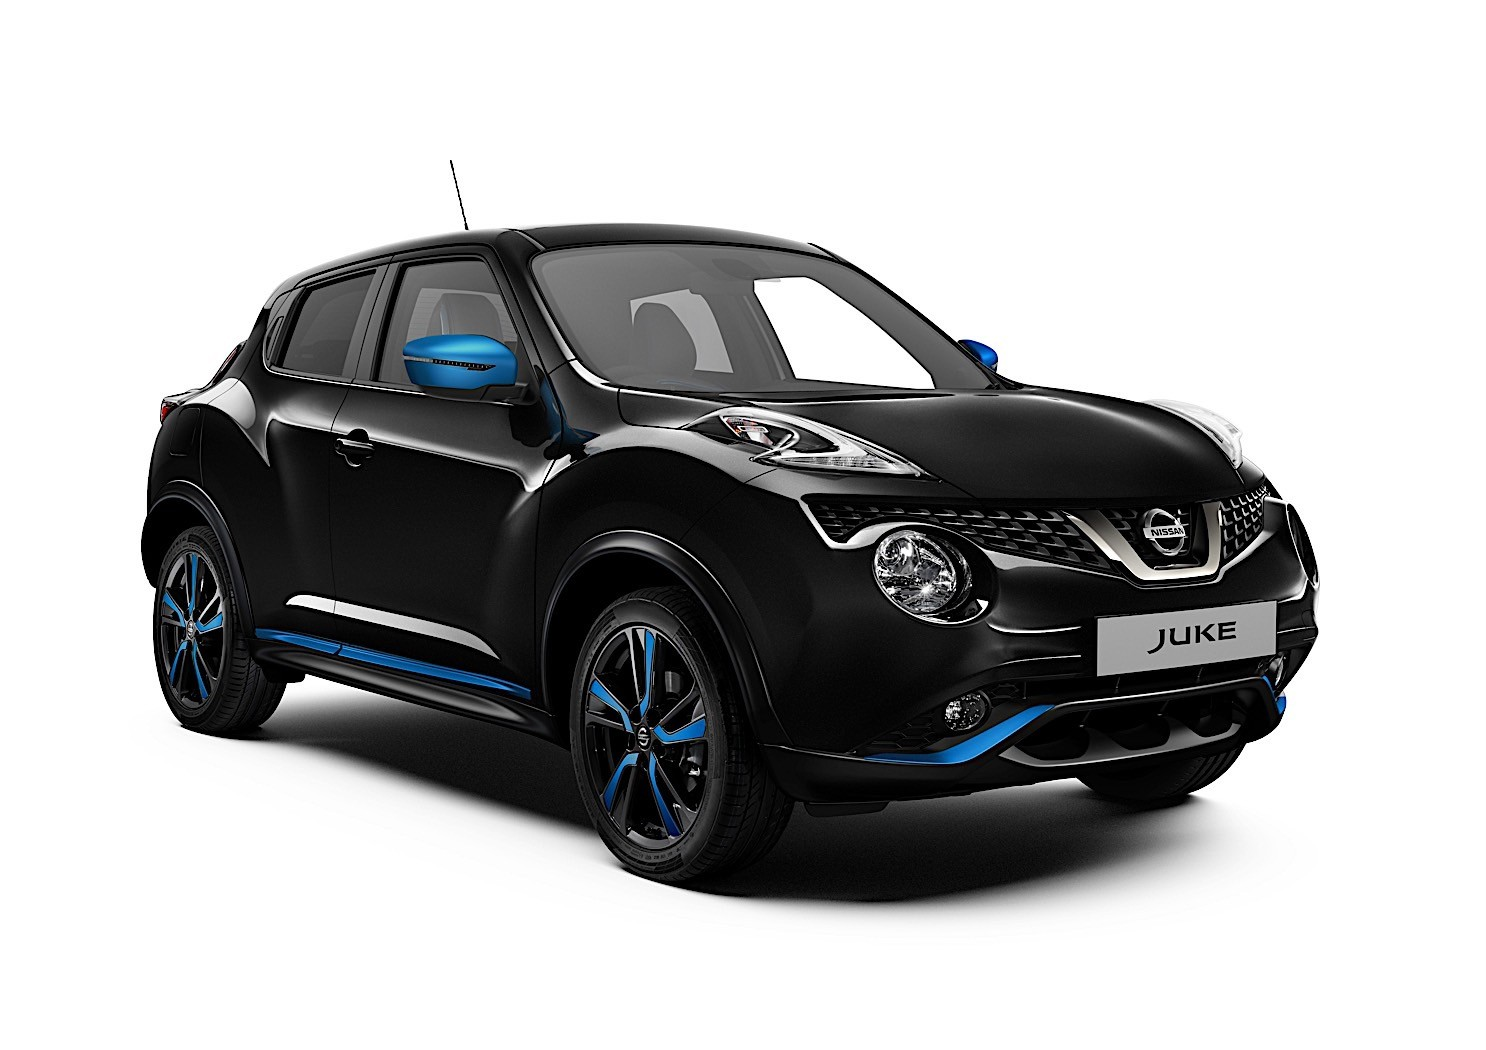 Nissan upgrades juke for the 2018 geneva motor show for Neuer nissan juke 2016